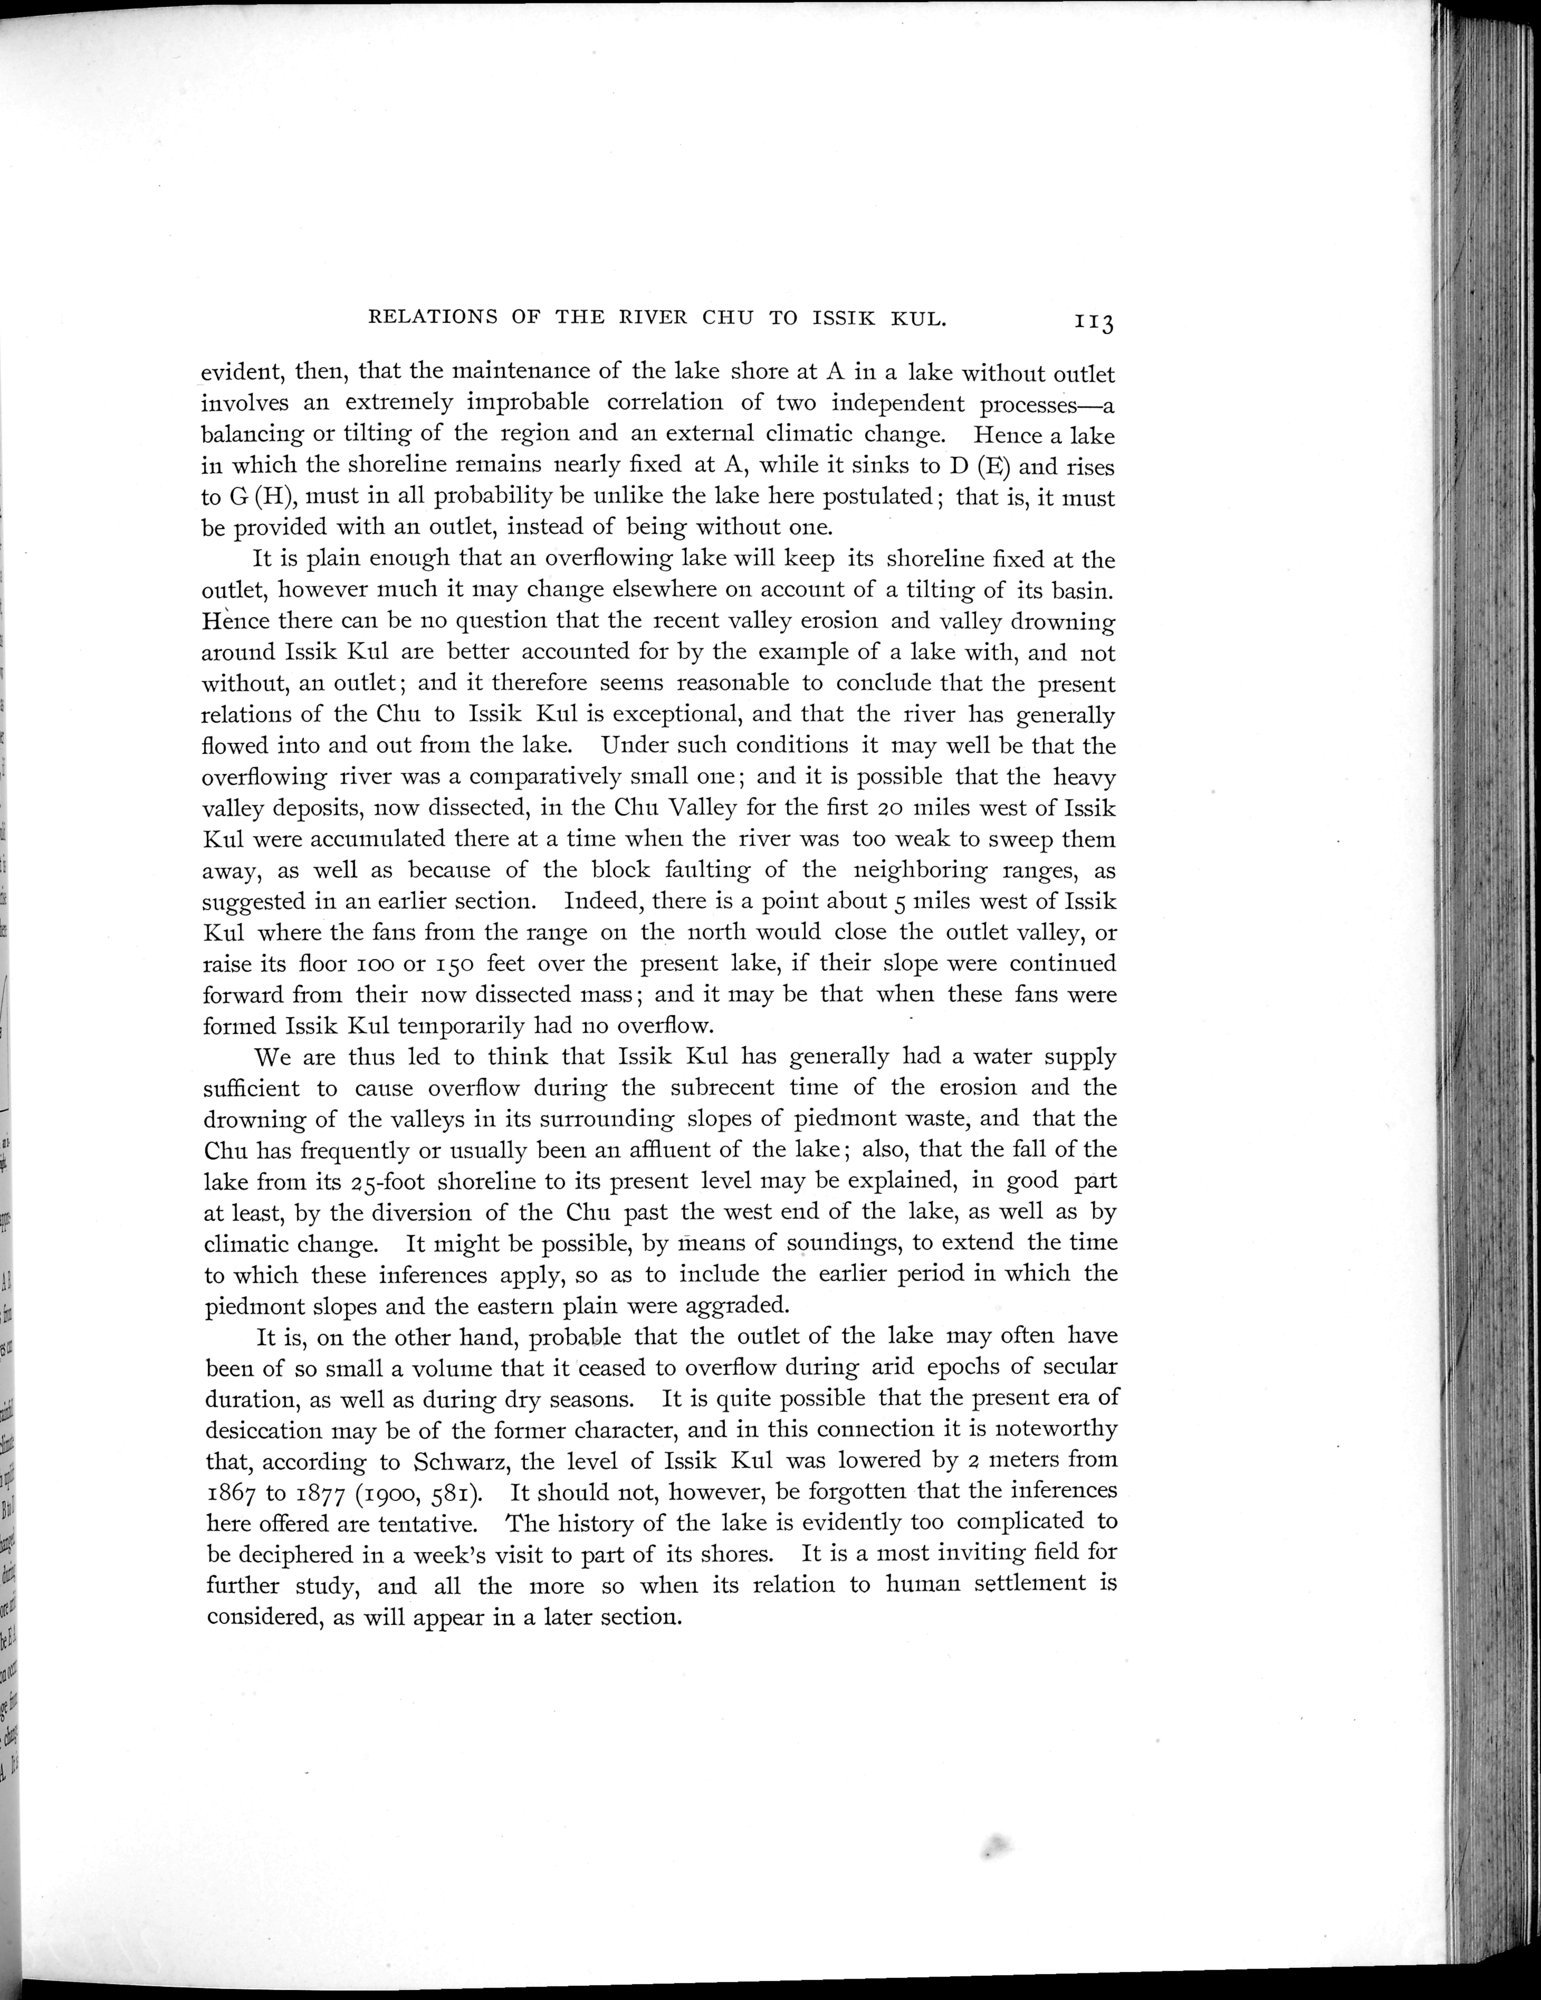 Explorations in Turkestan 1903 : vol.1 / Page 137 (Grayscale High Resolution Image)